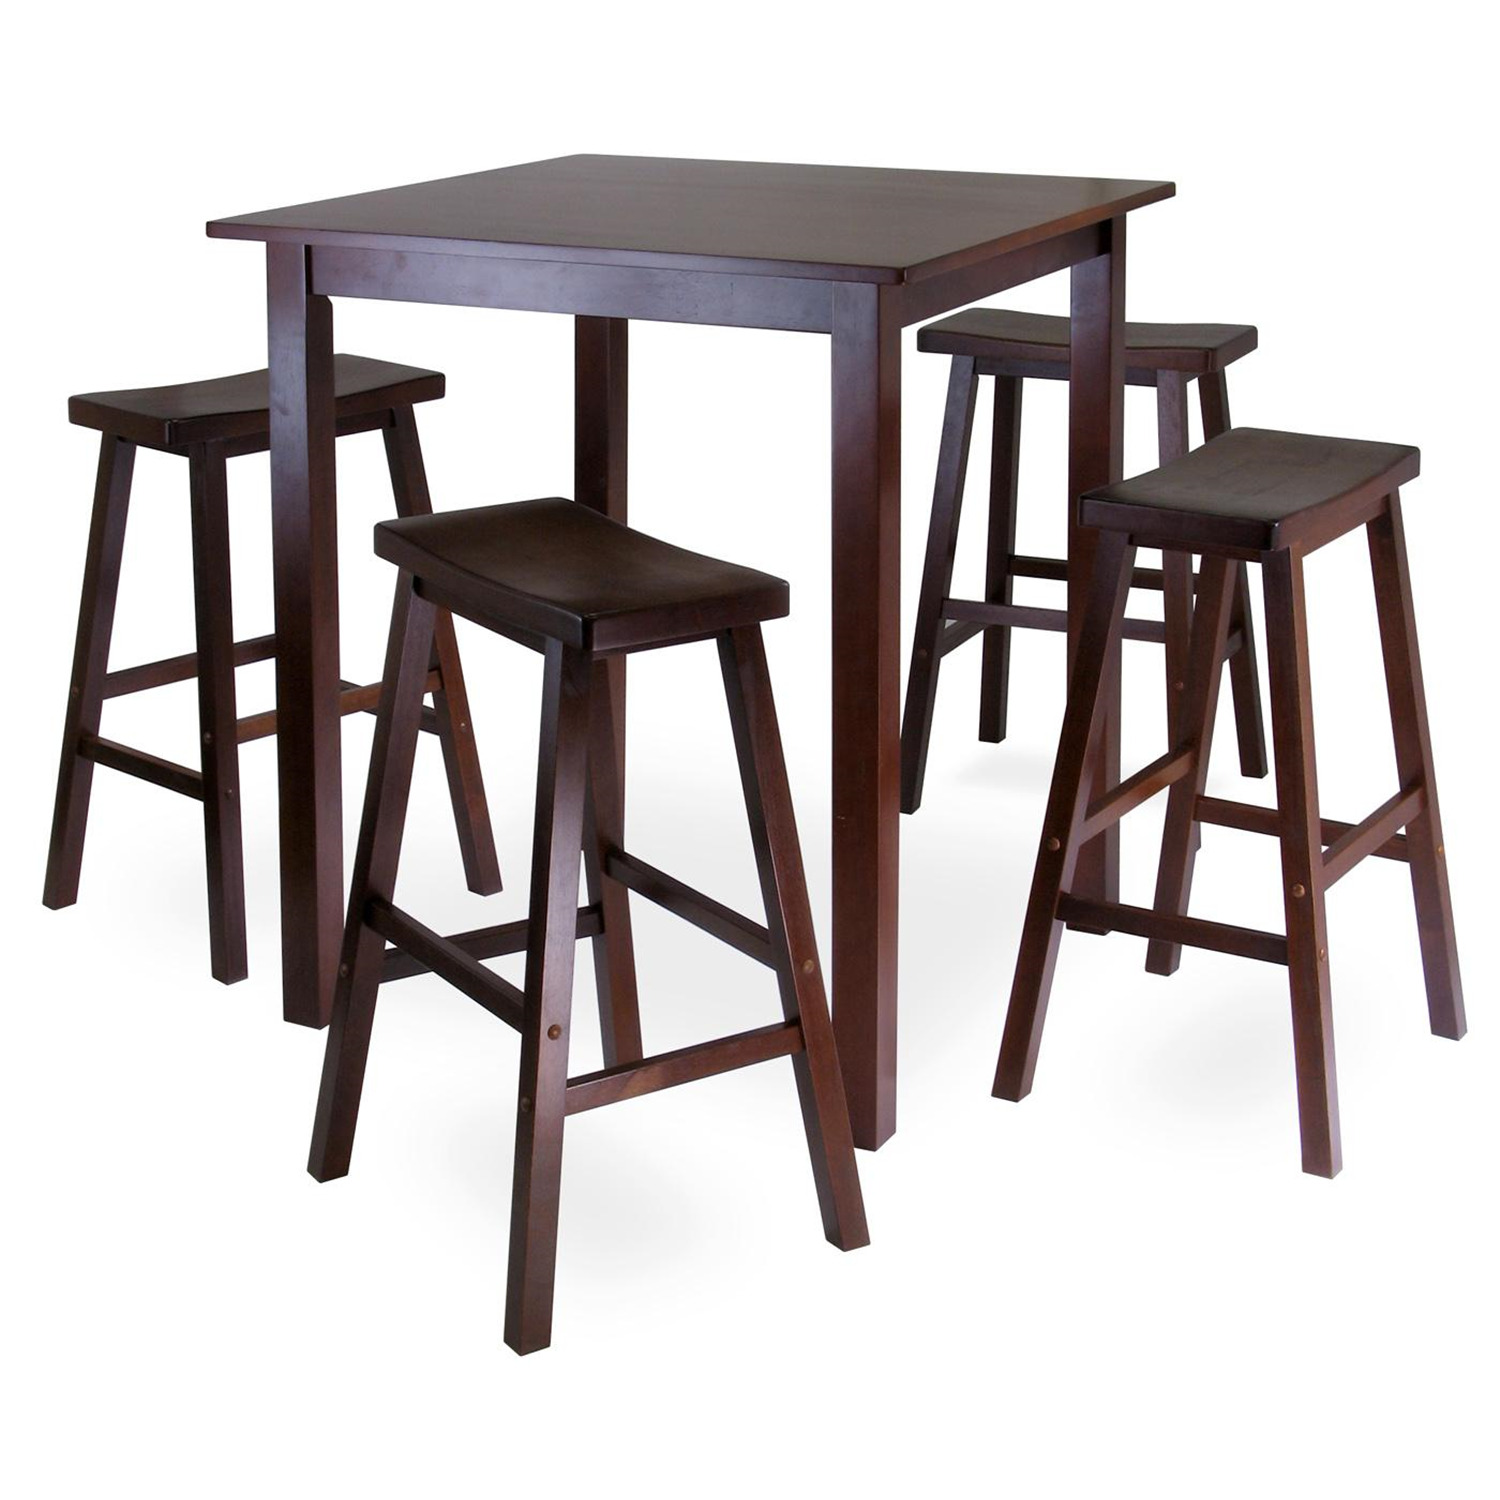 Parkland 5pc Square High Pub Table Set With 4 Saddle Seat